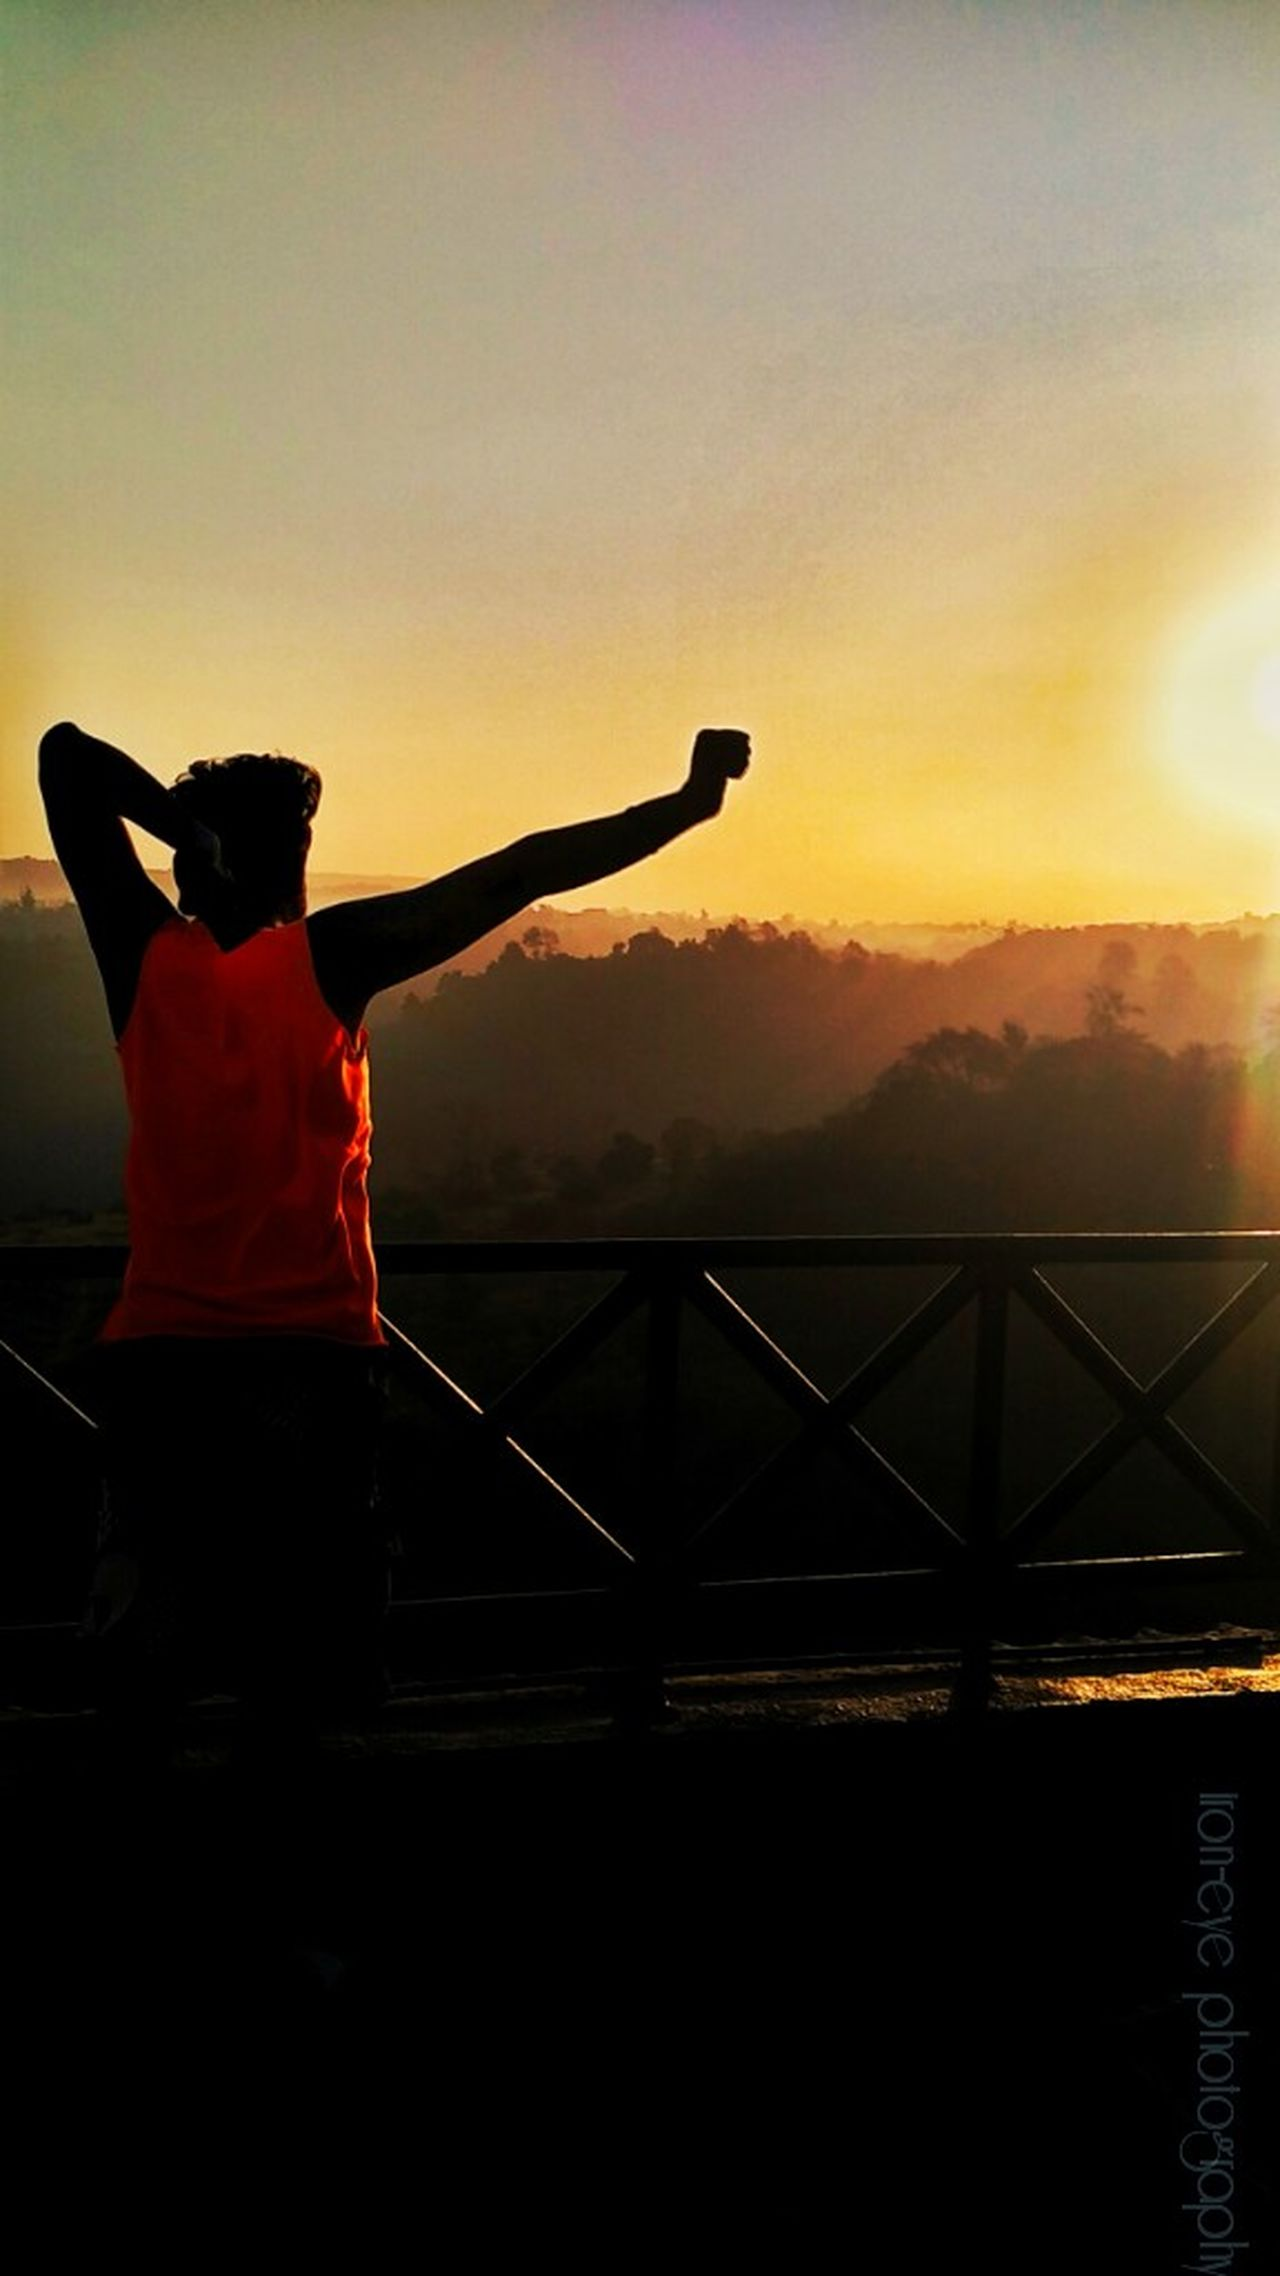 One of the best things about waking up early is uyou can see immaculate beauty of nature Check This Out Hanging Out Taking Photos That's Me Enjoying Life Awesome_shots The Traveler - 2015 EyeEm Awards Iron-eye Photography Capturing Emotion EyeEm Best Shots Silhouette Hello World Learn & Shoot: Simplicity